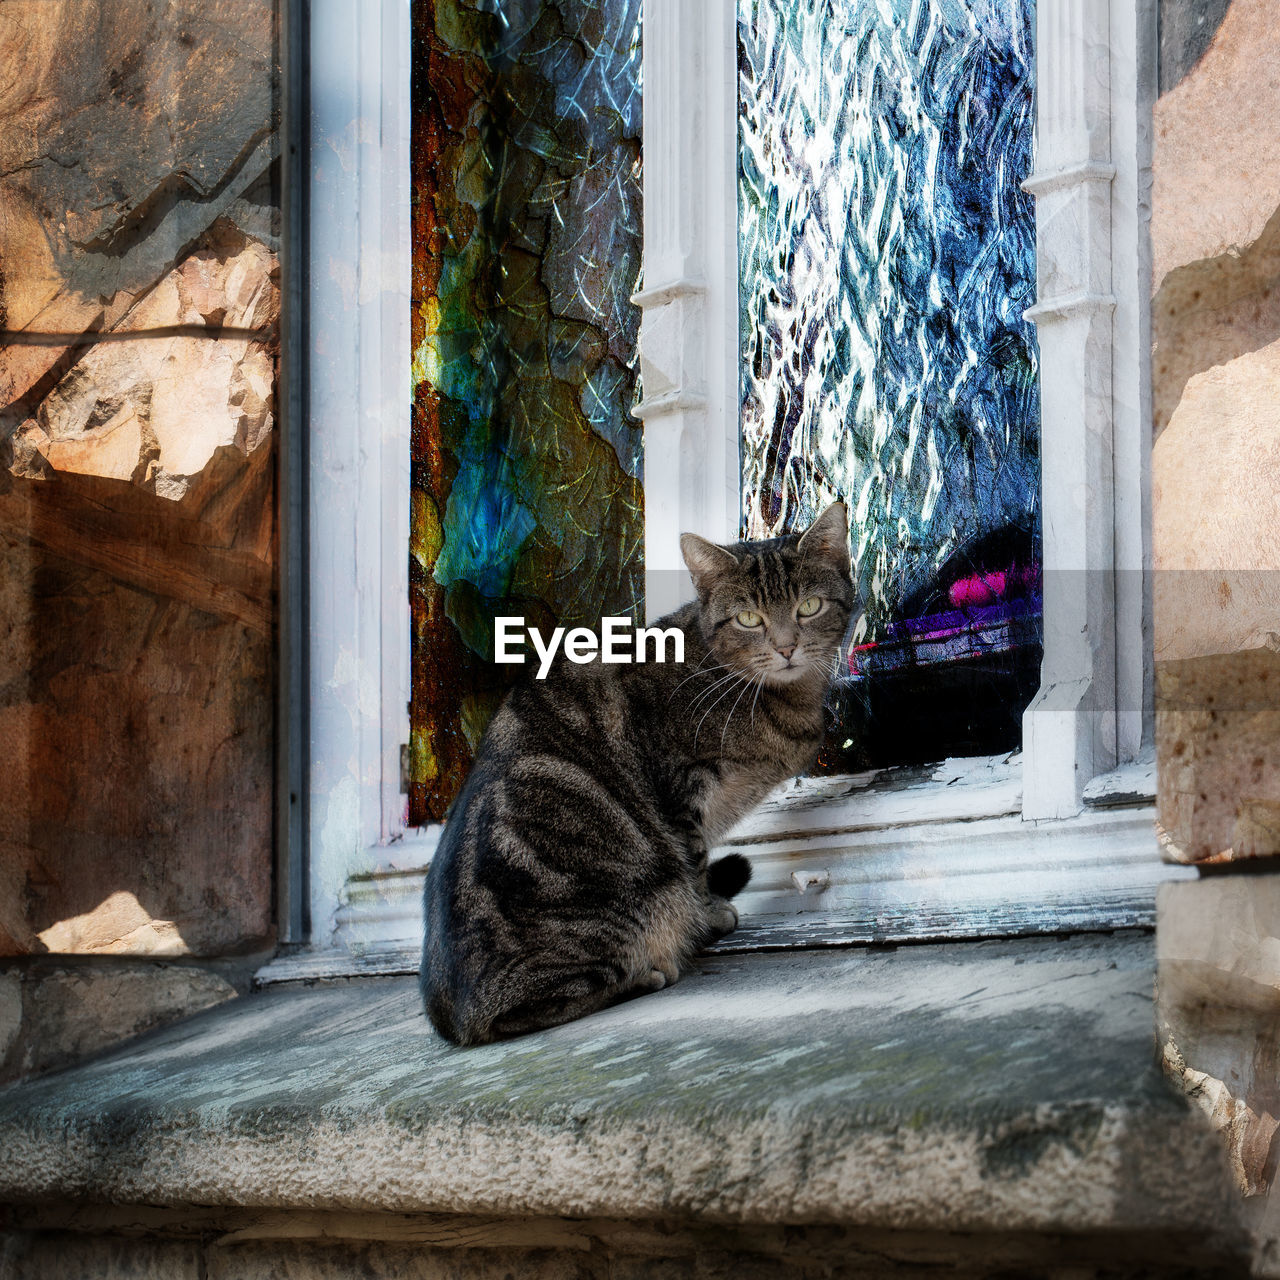 cat, domestic cat, domestic, pets, feline, domestic animals, animal, mammal, animal themes, one animal, vertebrate, window, sitting, no people, relaxation, day, architecture, portrait, window sill, built structure, whisker, maine coon cat